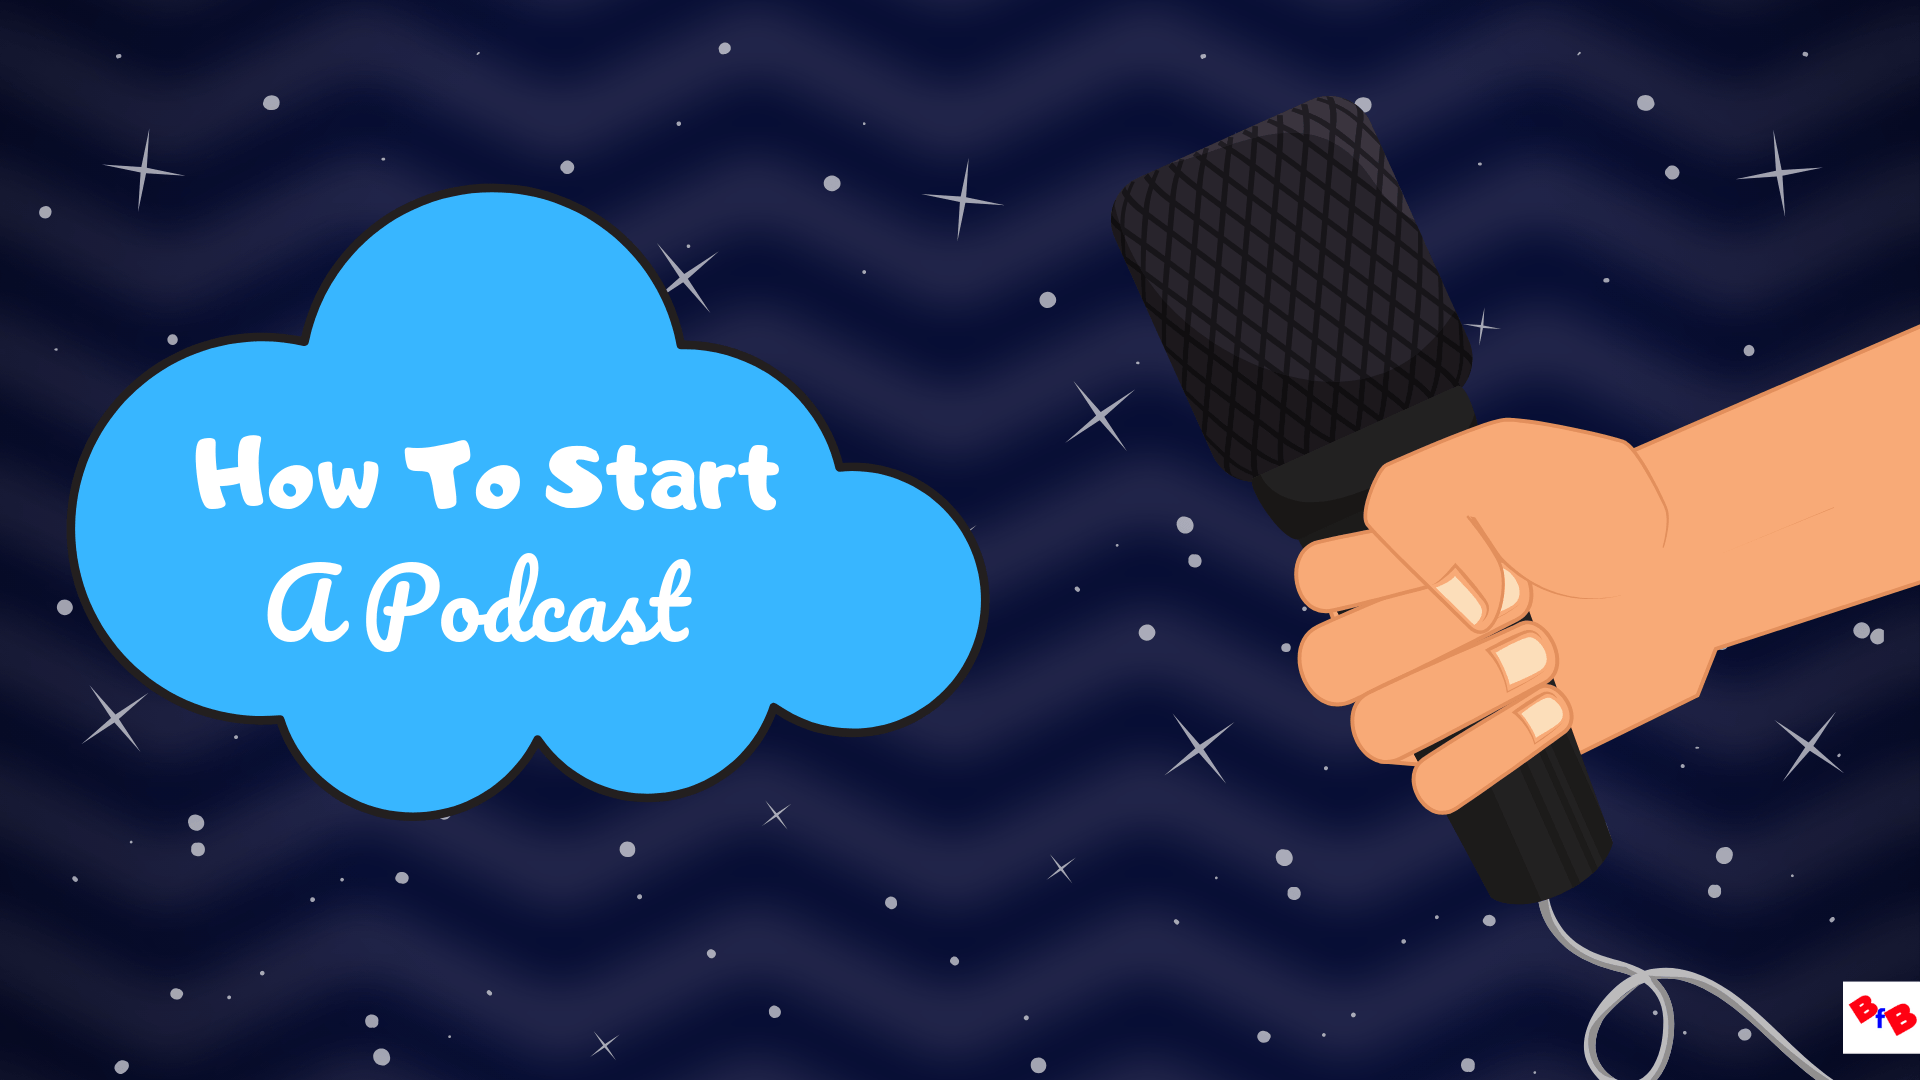 starting-a-podcast-made-simple-a-step-by-step-guide-4